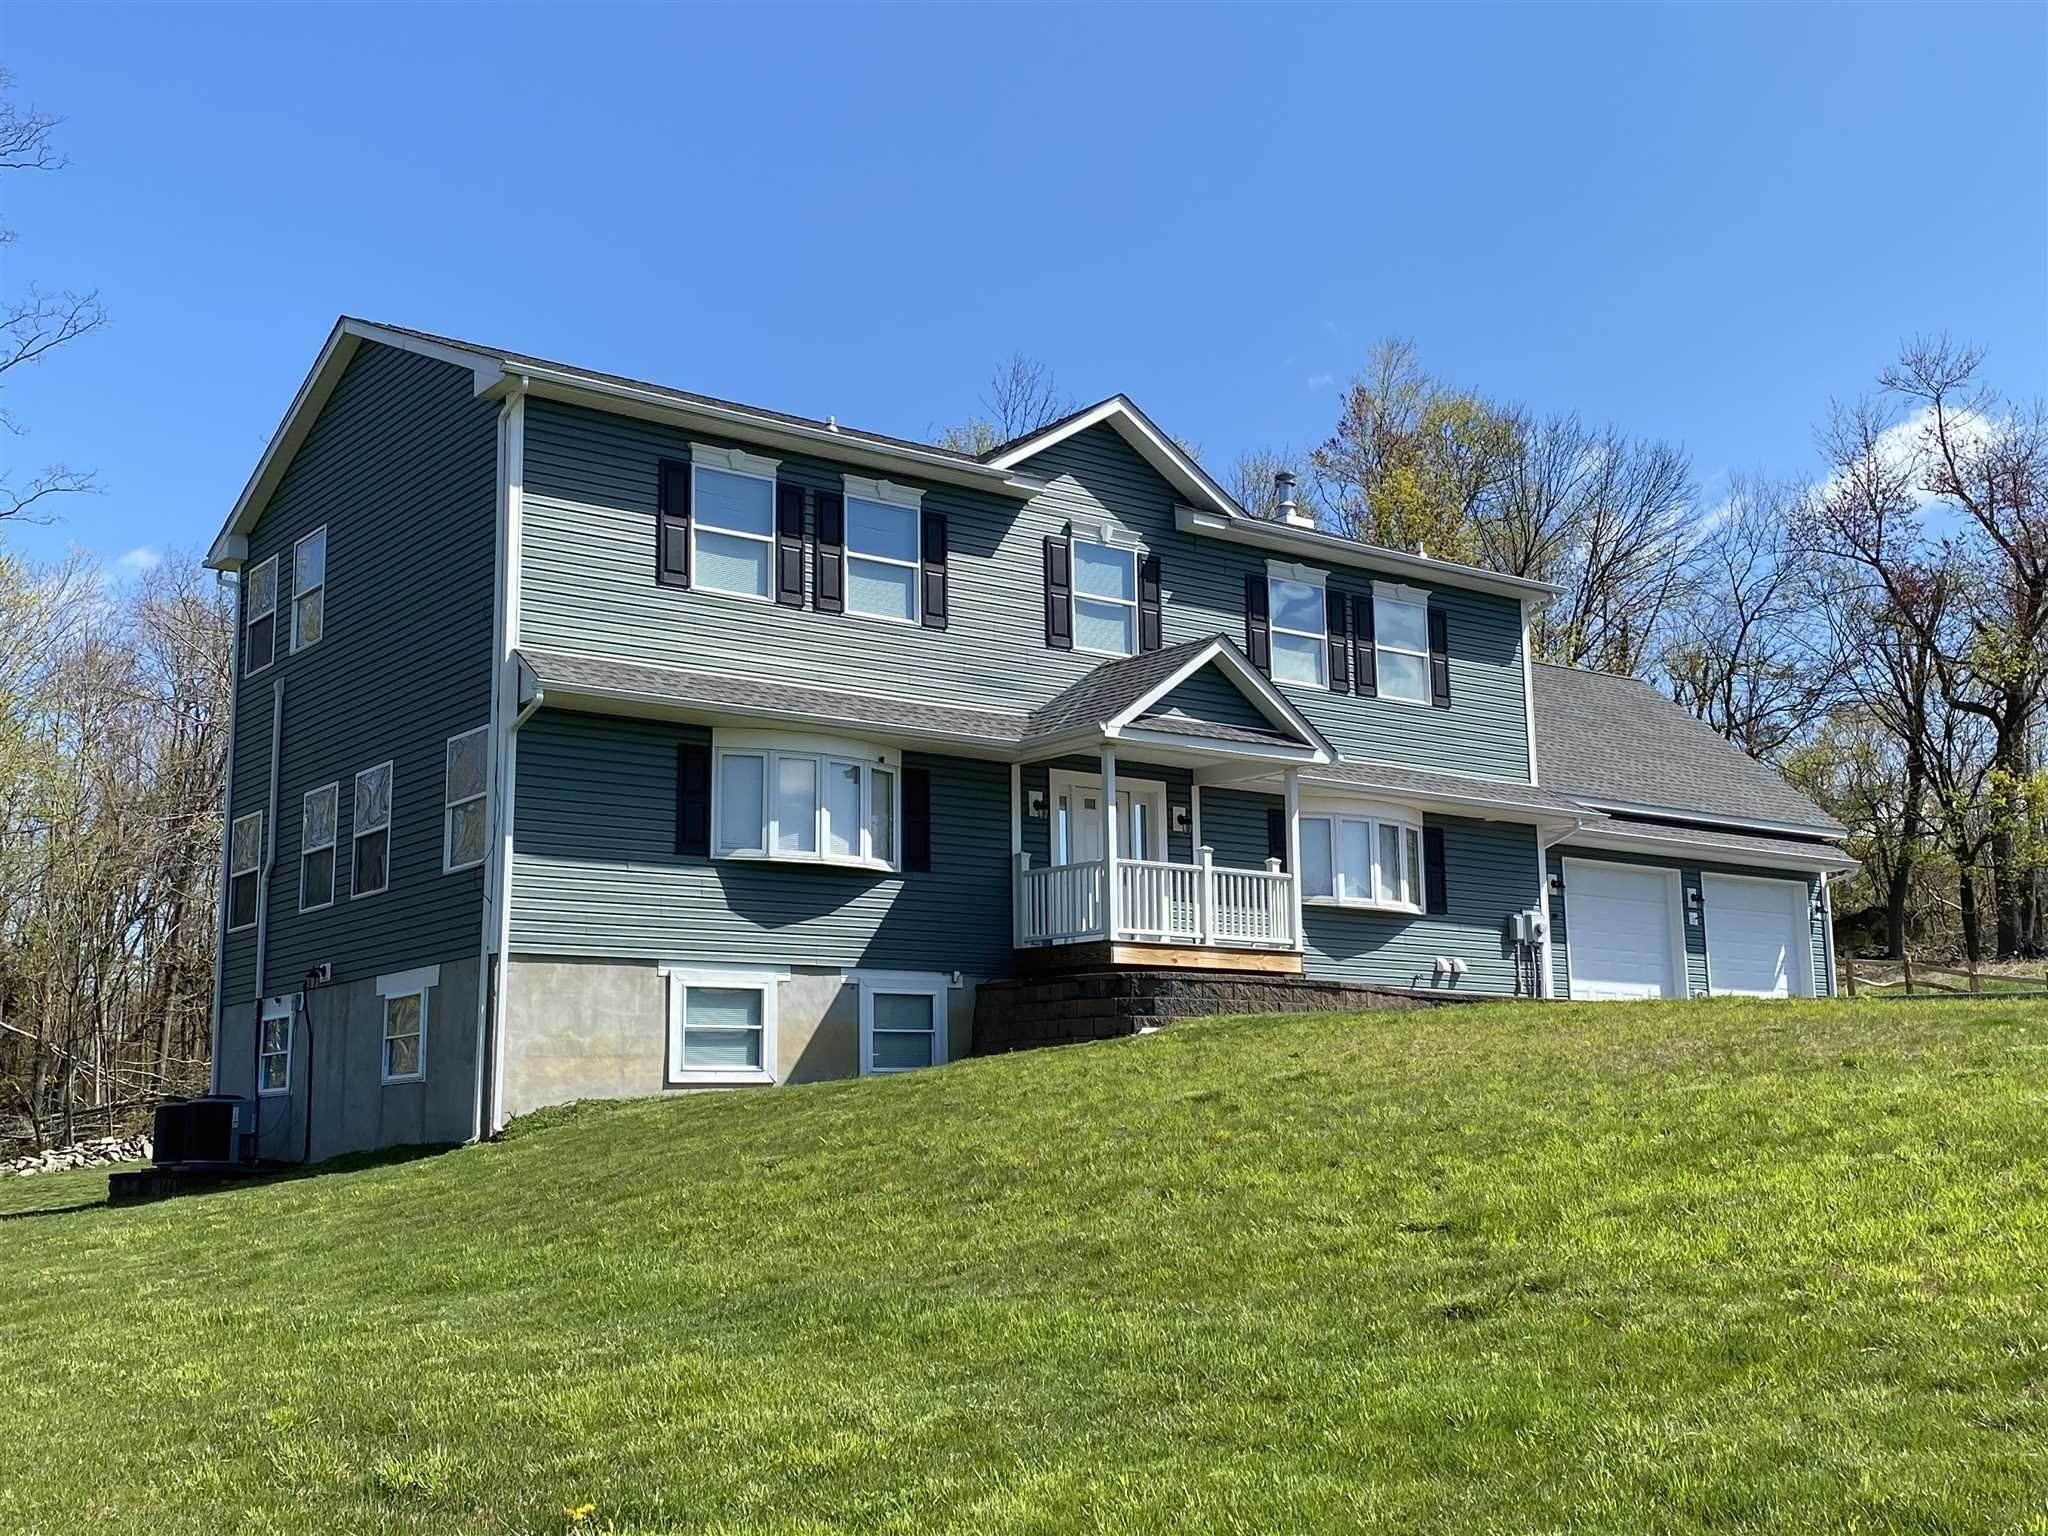 Single Family Homes for Sale at 225 BEDFORD LANE Fishkill, New York 12524 United States